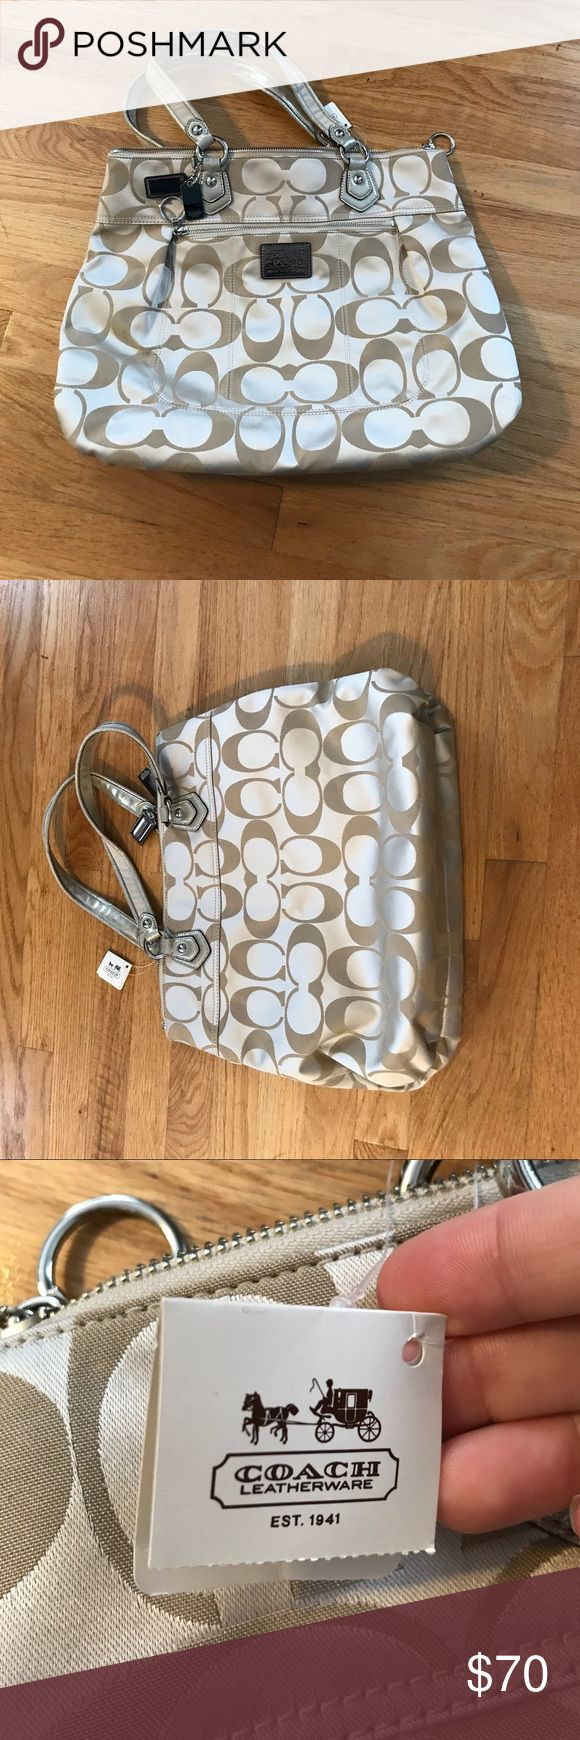 Coach Poppy Purse Brand new Coach purse! Still has the tags! Perfect for going out and doing errands. Can fit small laptop or tablet! Beige with pink interior. Coach Bags Totes